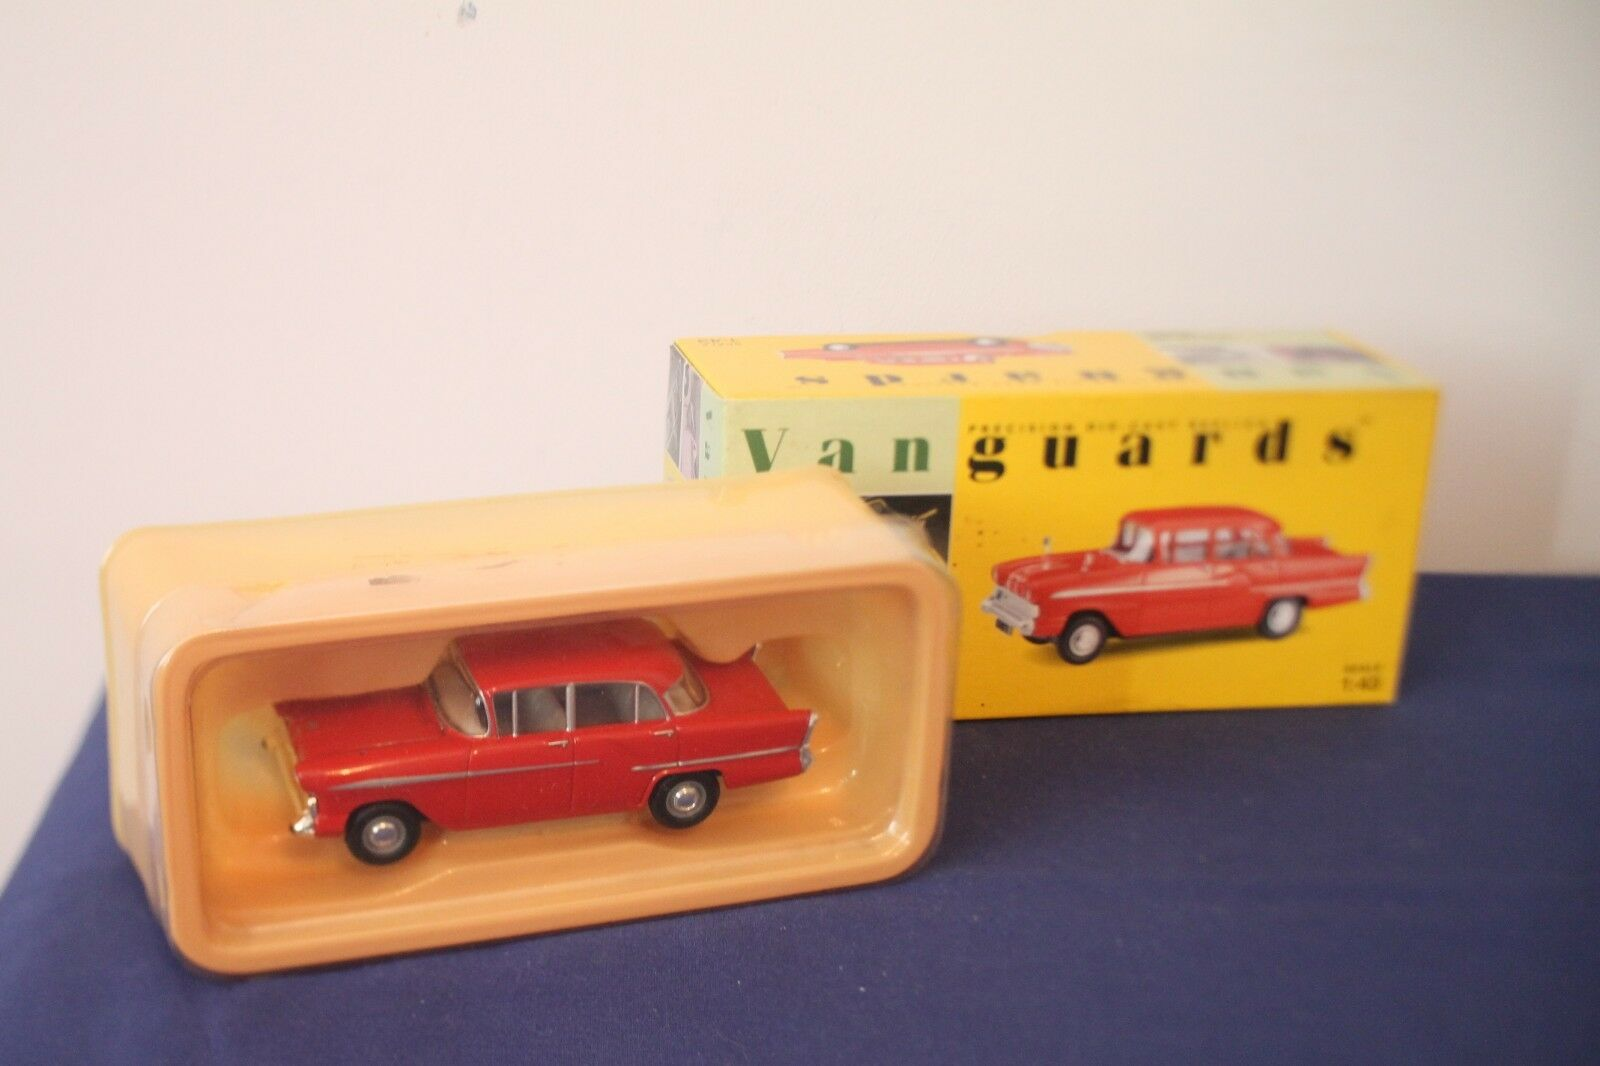 Vanguards Model Vehicles all Boxed in Good Condition